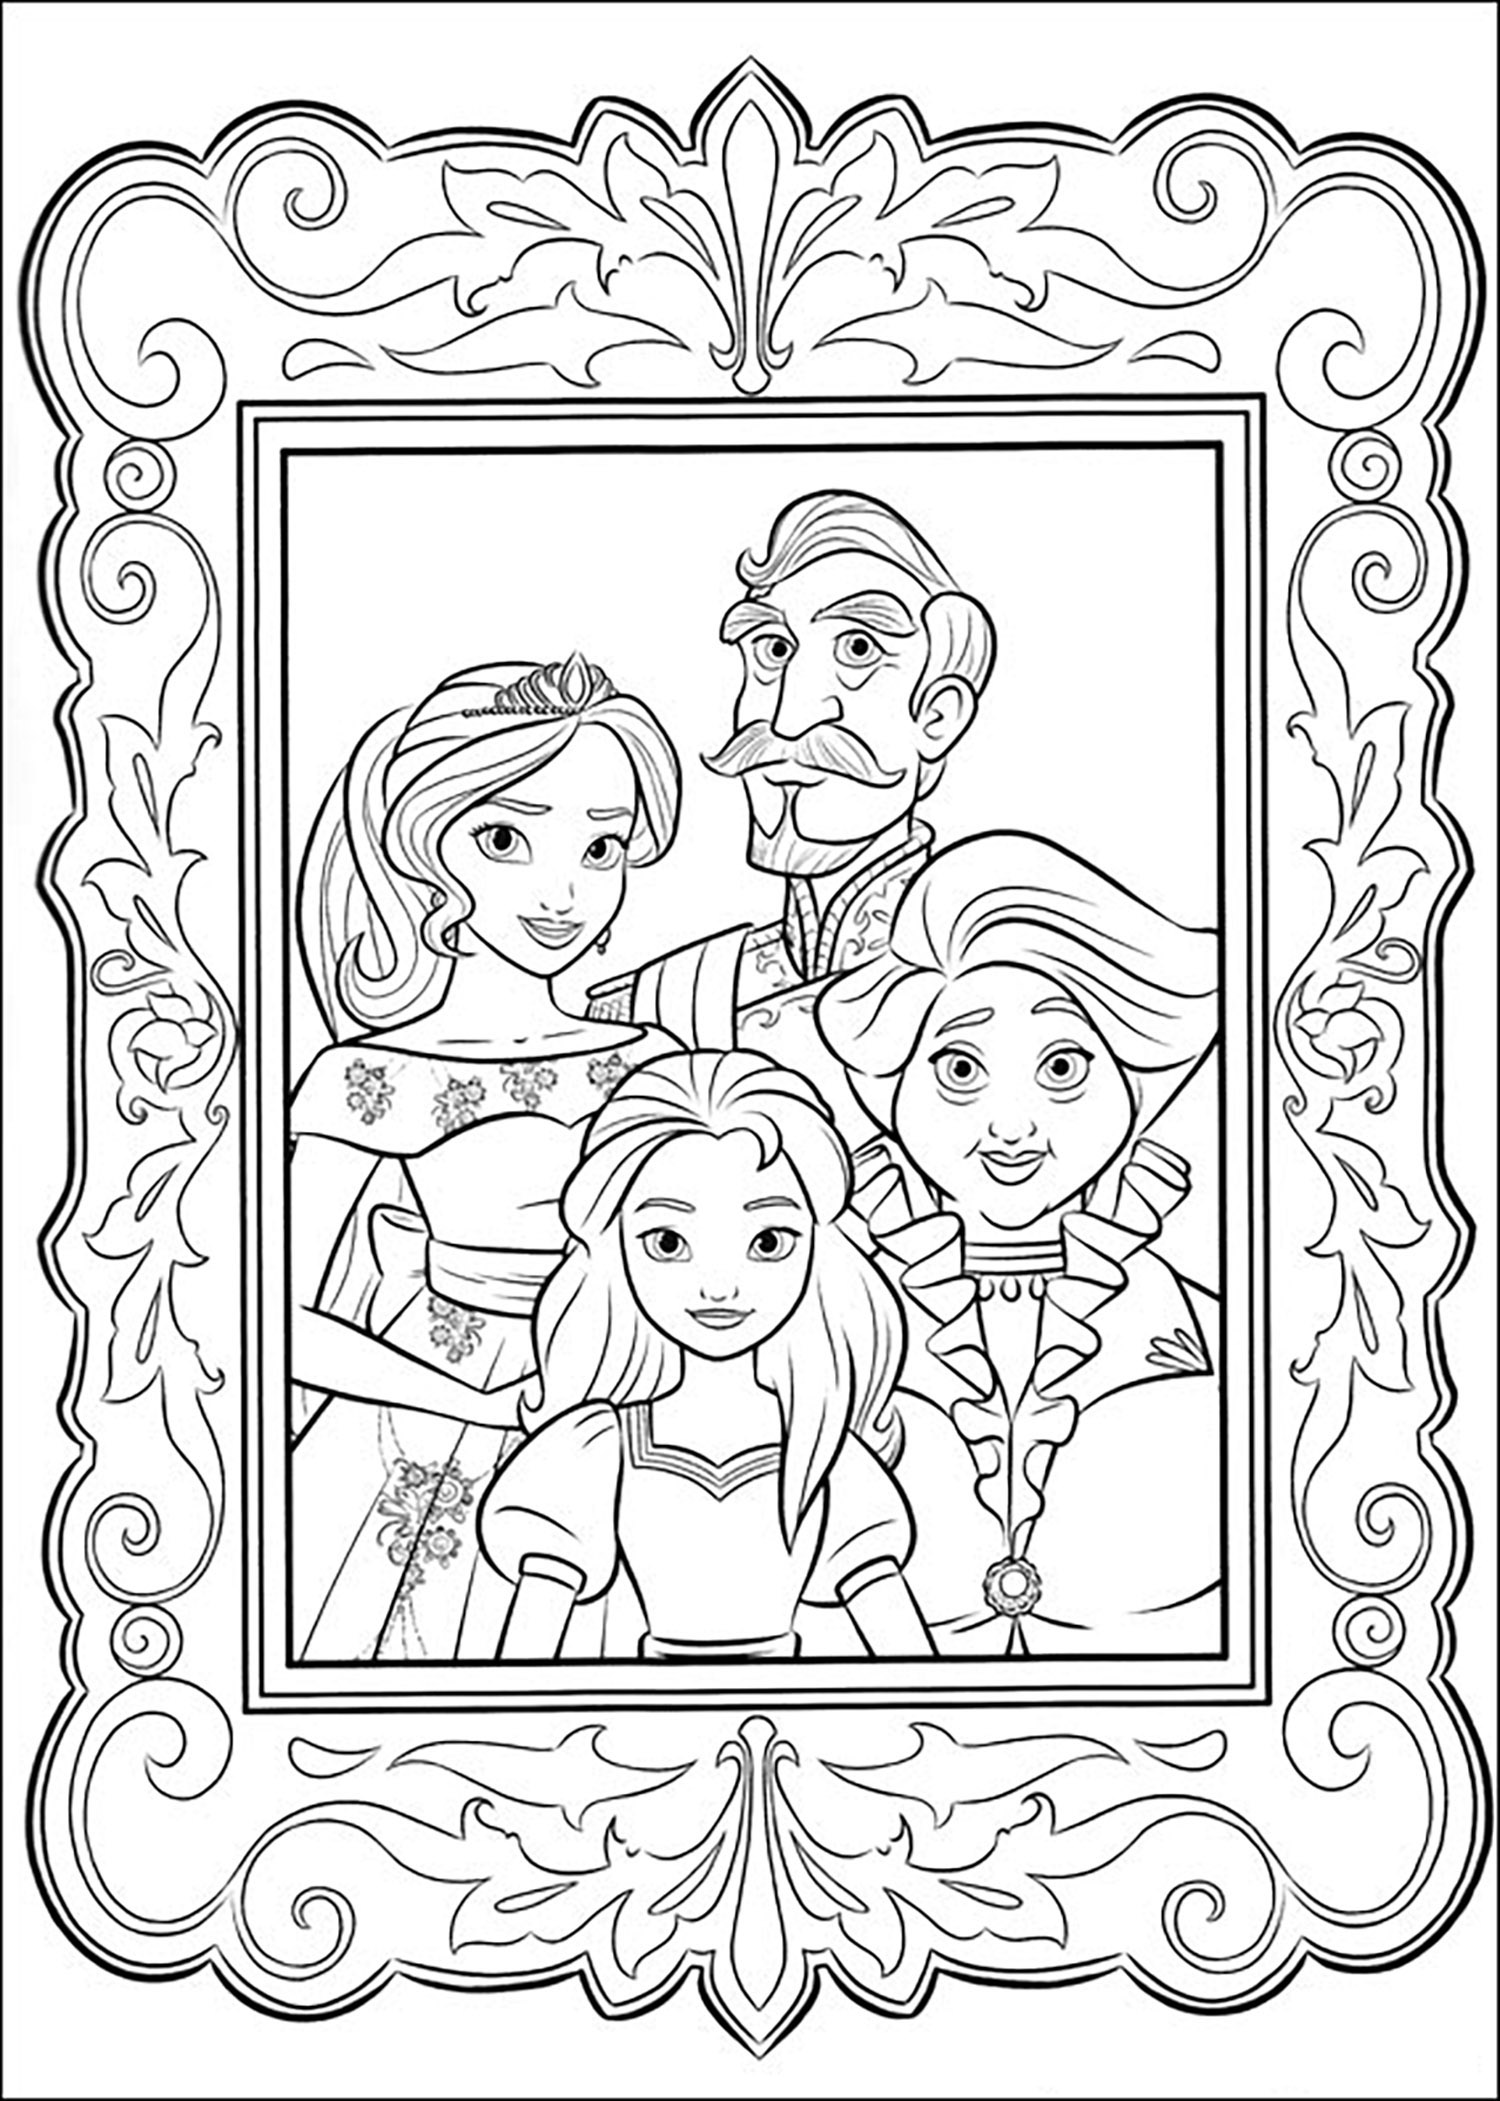 Simple Elena Avalor coloring page to download for free